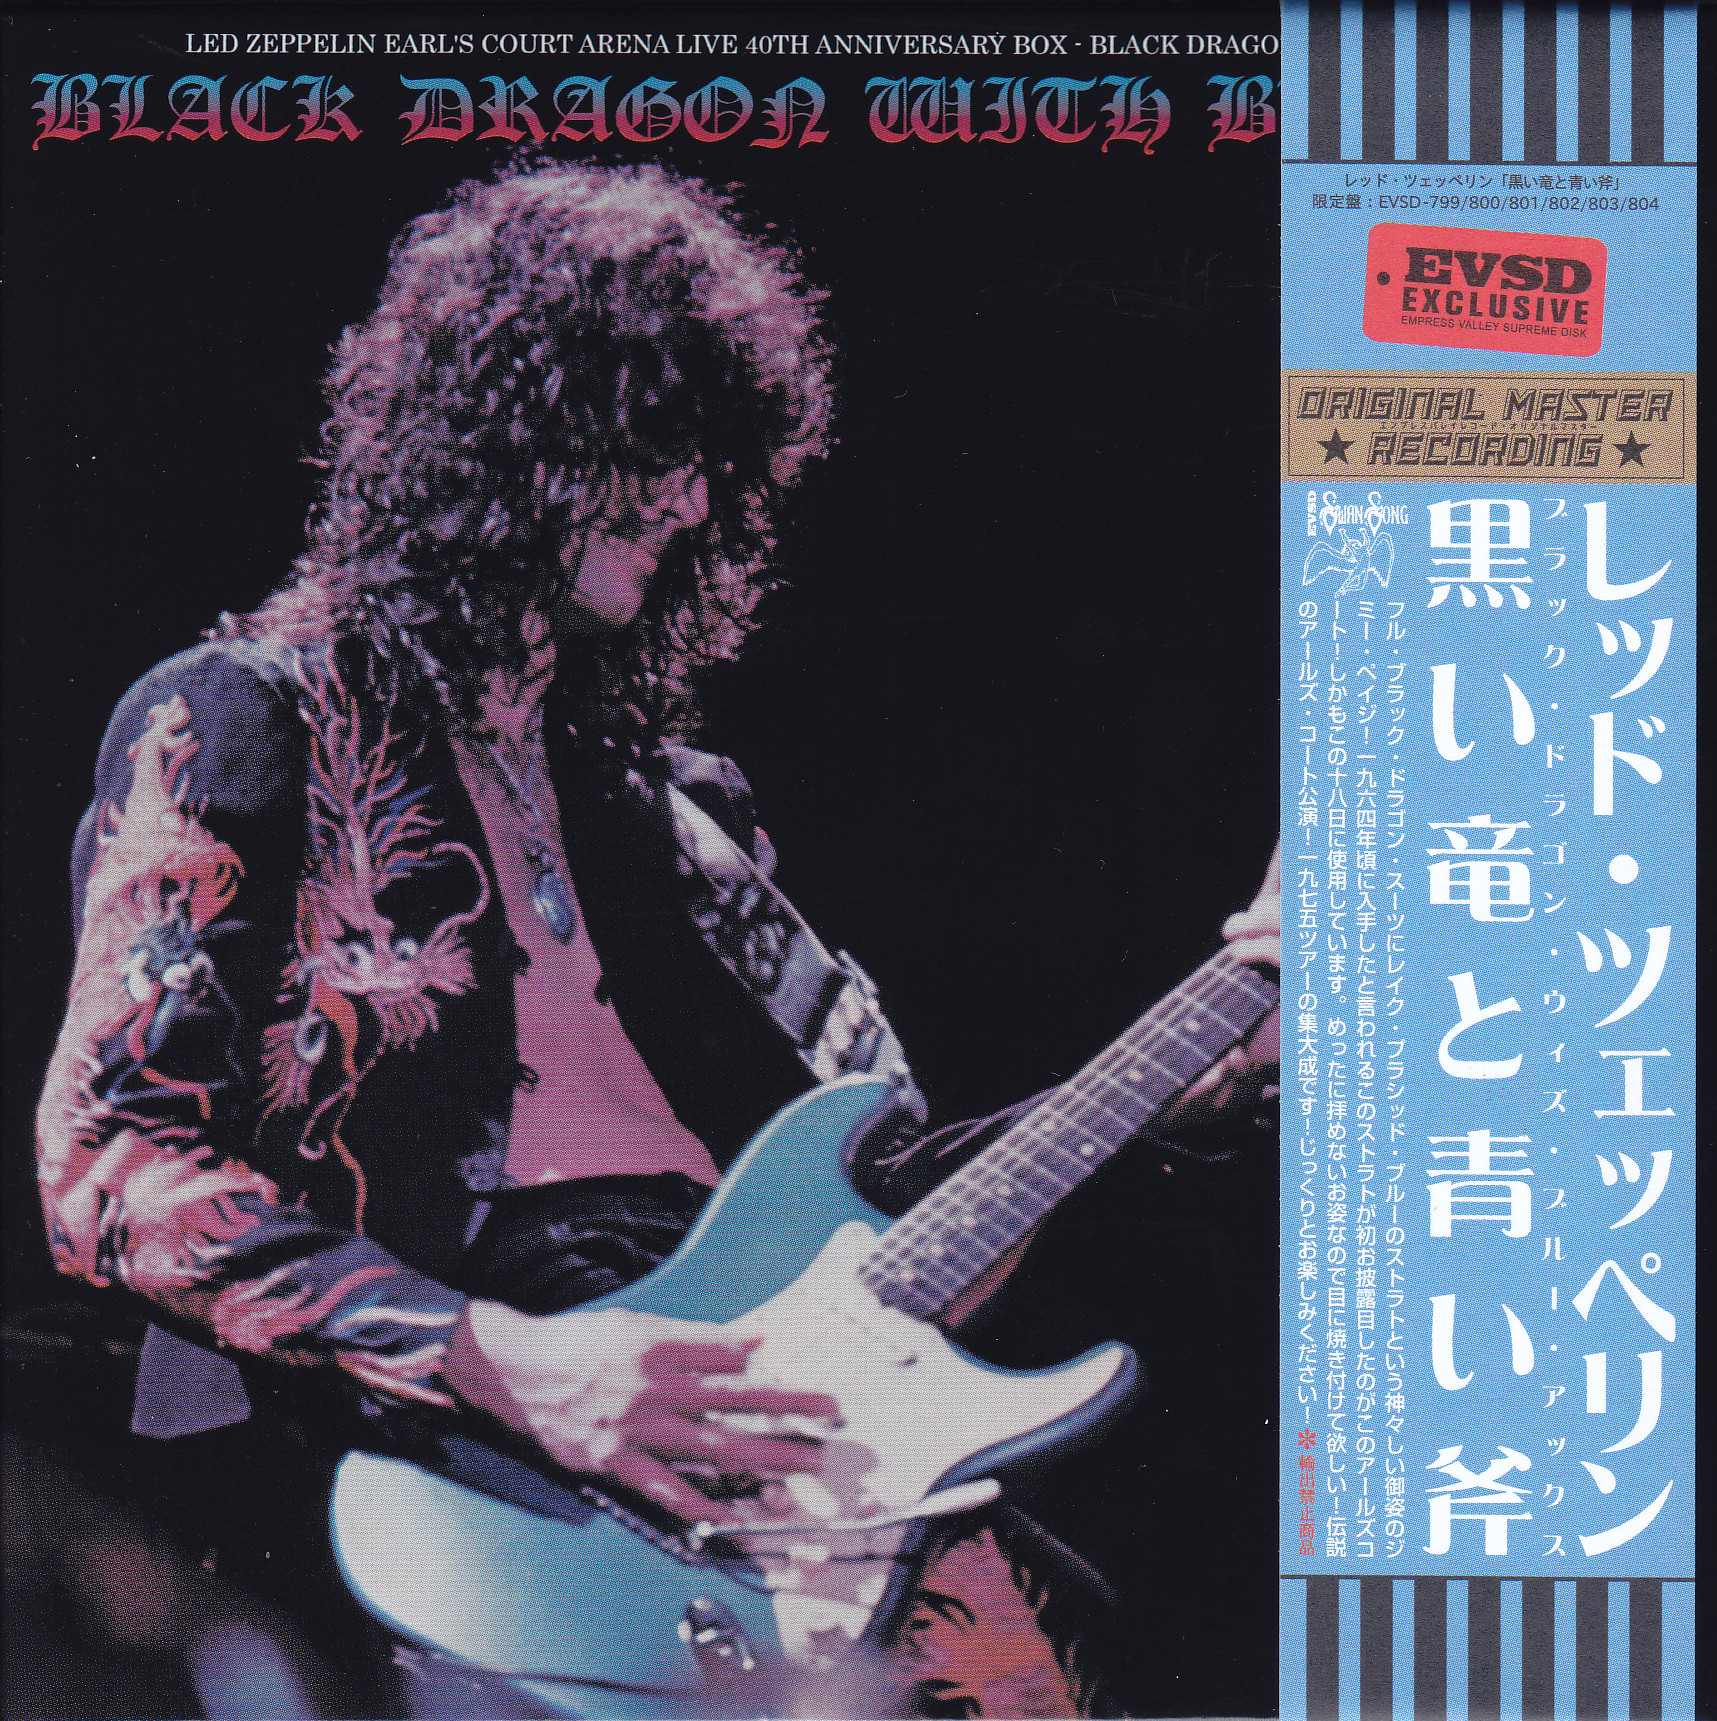 Led Zeppelin - Black Dragon With Blue Axe (6CD Box Set) Empress Valley  Supreme Disc EVSD-799-804